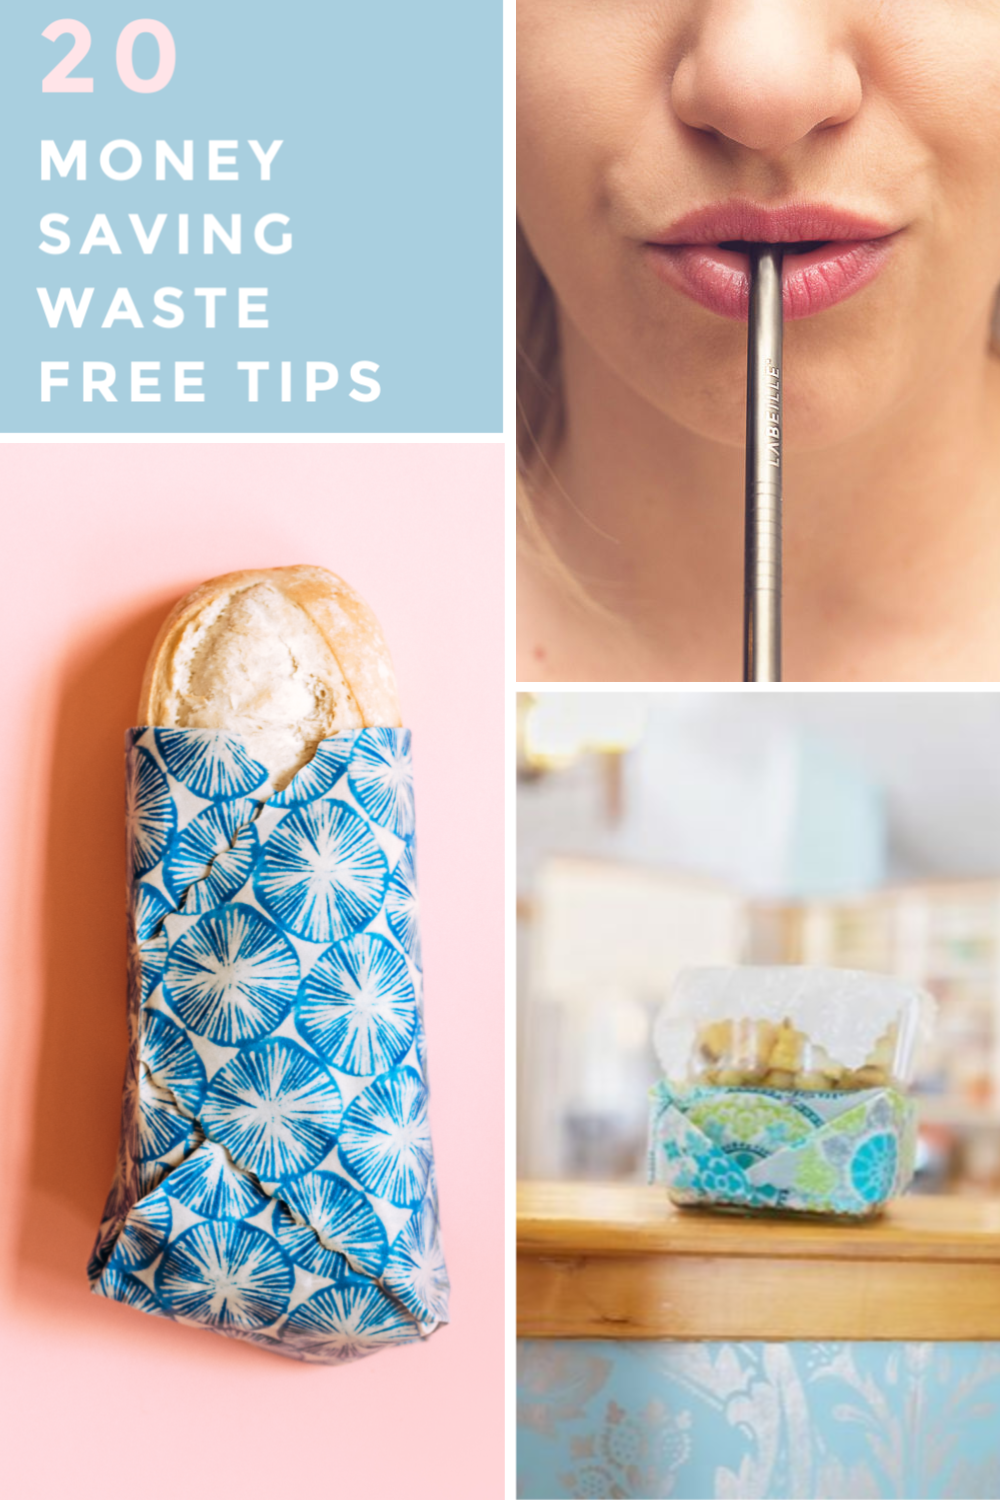 20 MONEY SAVING WASTE FREE TIPS (#1 & #5 WILL BLOW YOUR MIND!)